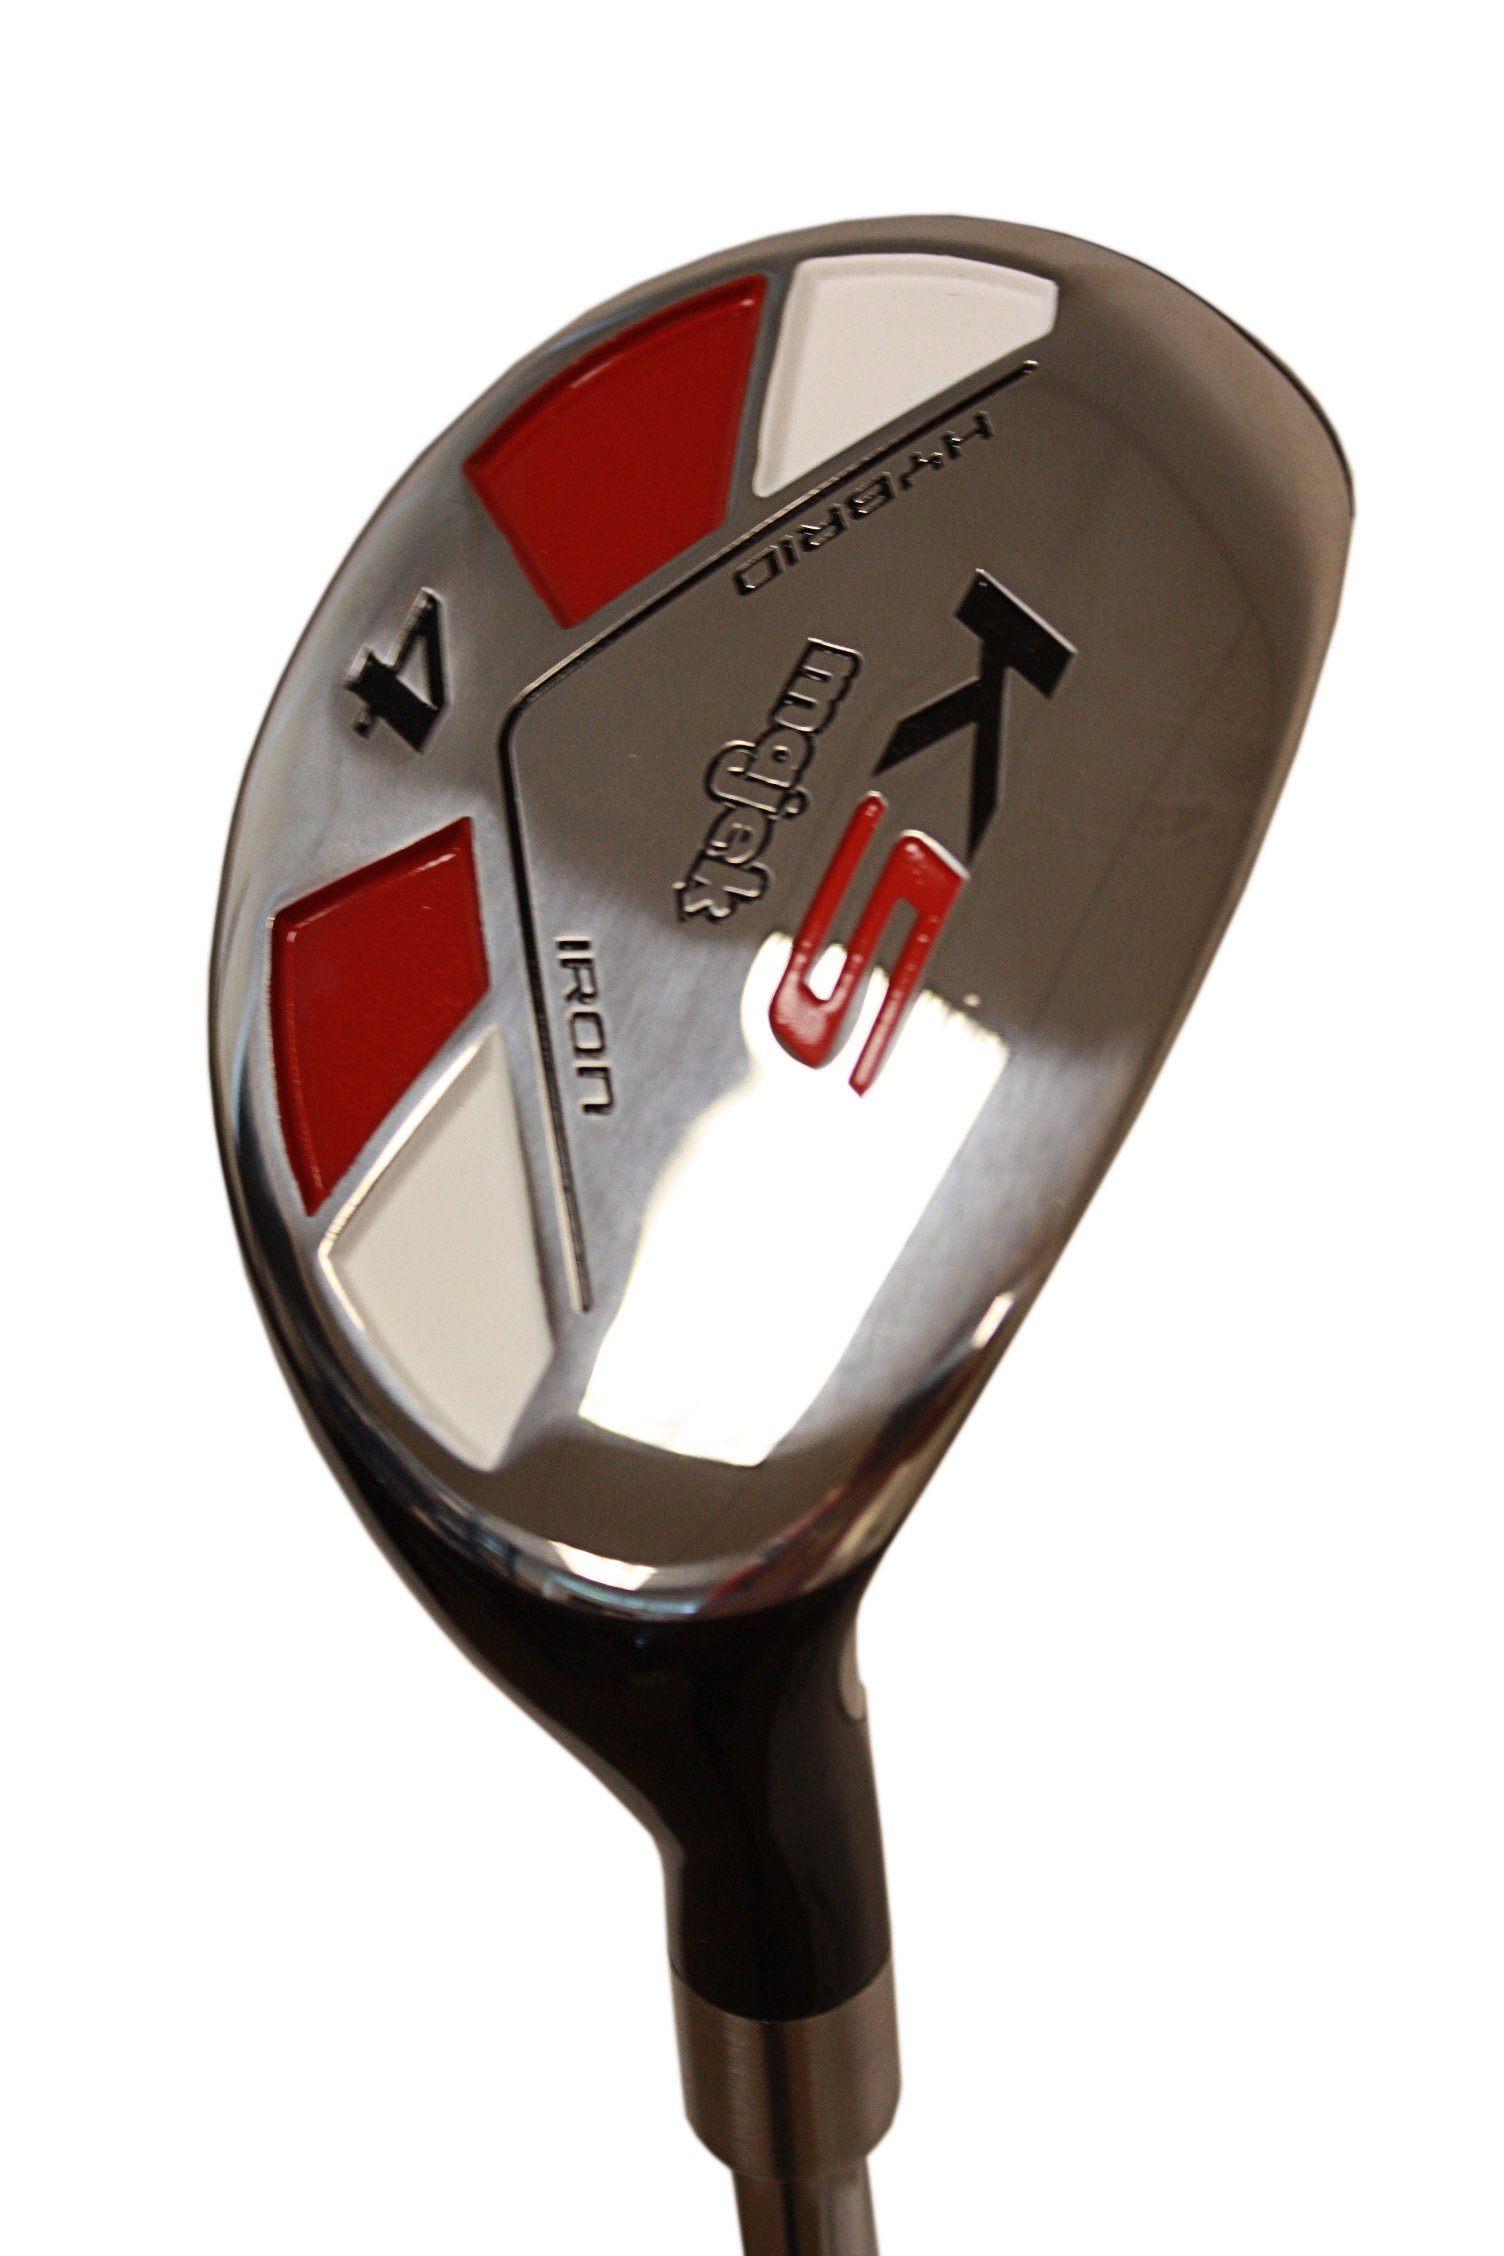 Big Tall Golf All True Hybrids Majek +1'' Longer Than Standard Length (Plus One Inch Longer) Set All Complete Full Set, Which Includes: #3, 4, 5, 6, 7, 8, 9, Pw Regular Flex R Right Handed New Rescue Utility Hybrid by Majek K5 Men's All True Hybrid Set (Regular Flex) (Image #9)